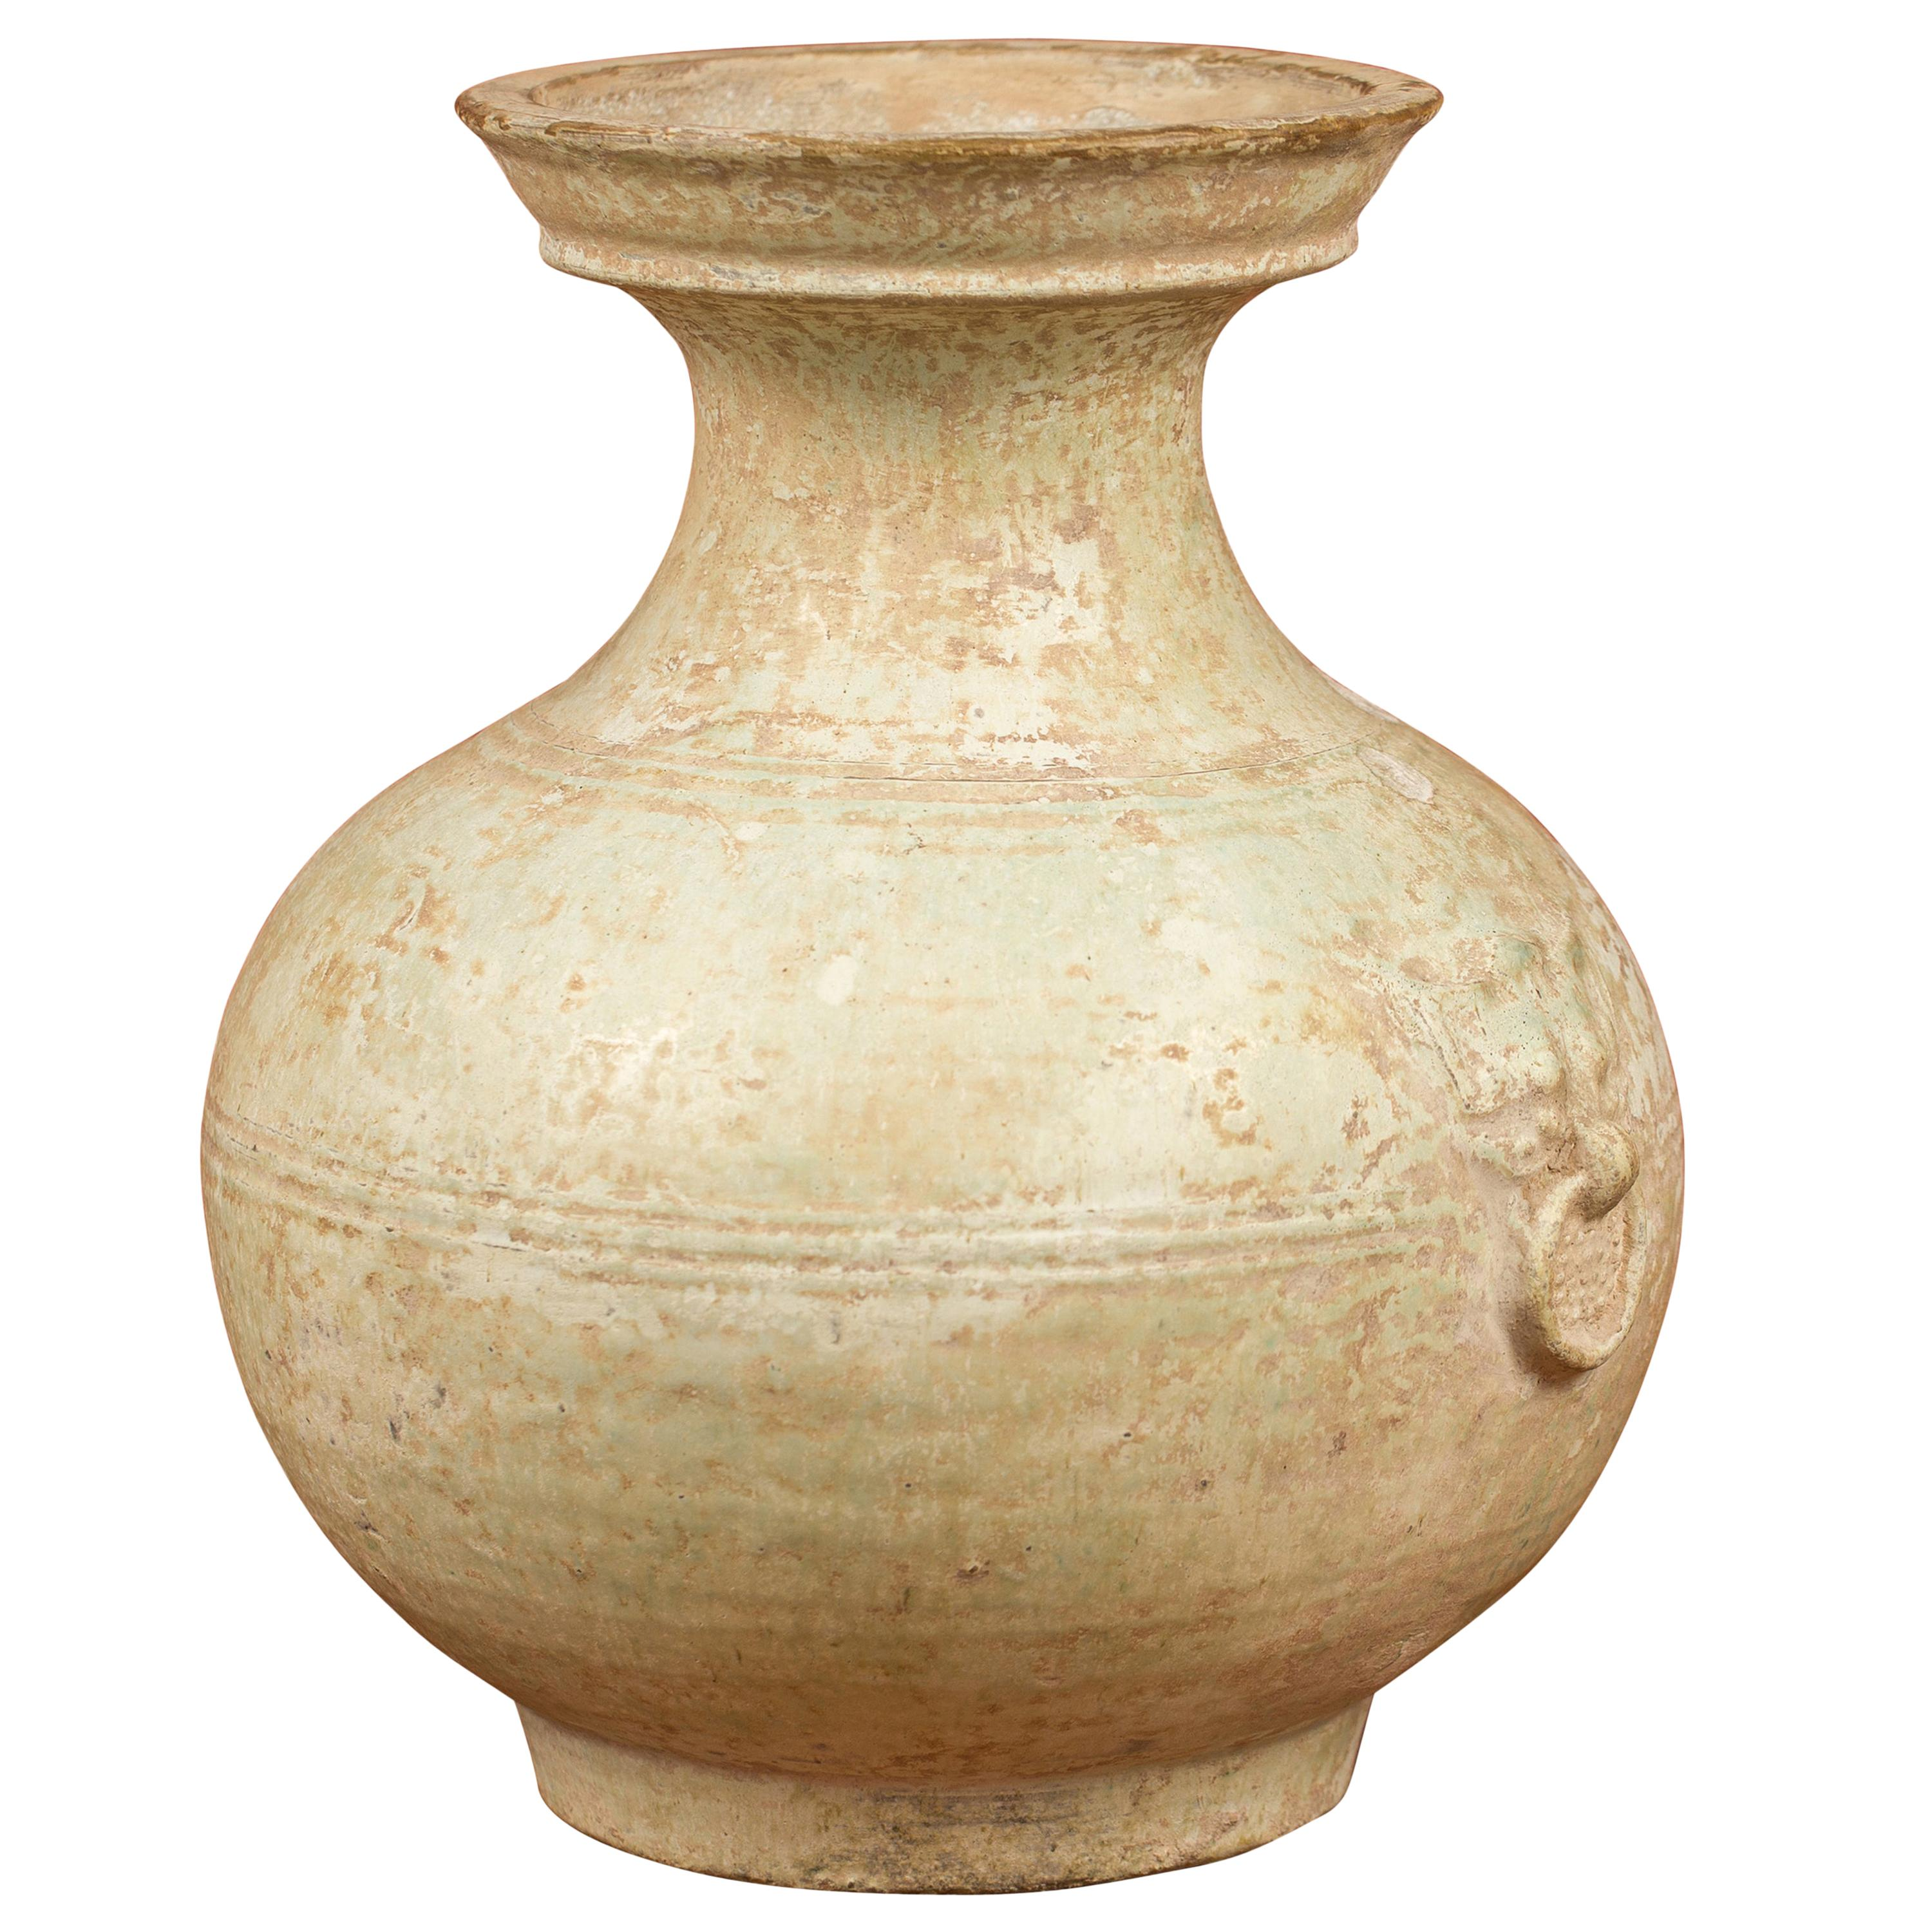 Chinese Han Dynasty Hu Vessel with Light Green Glaze and Decorative Rings